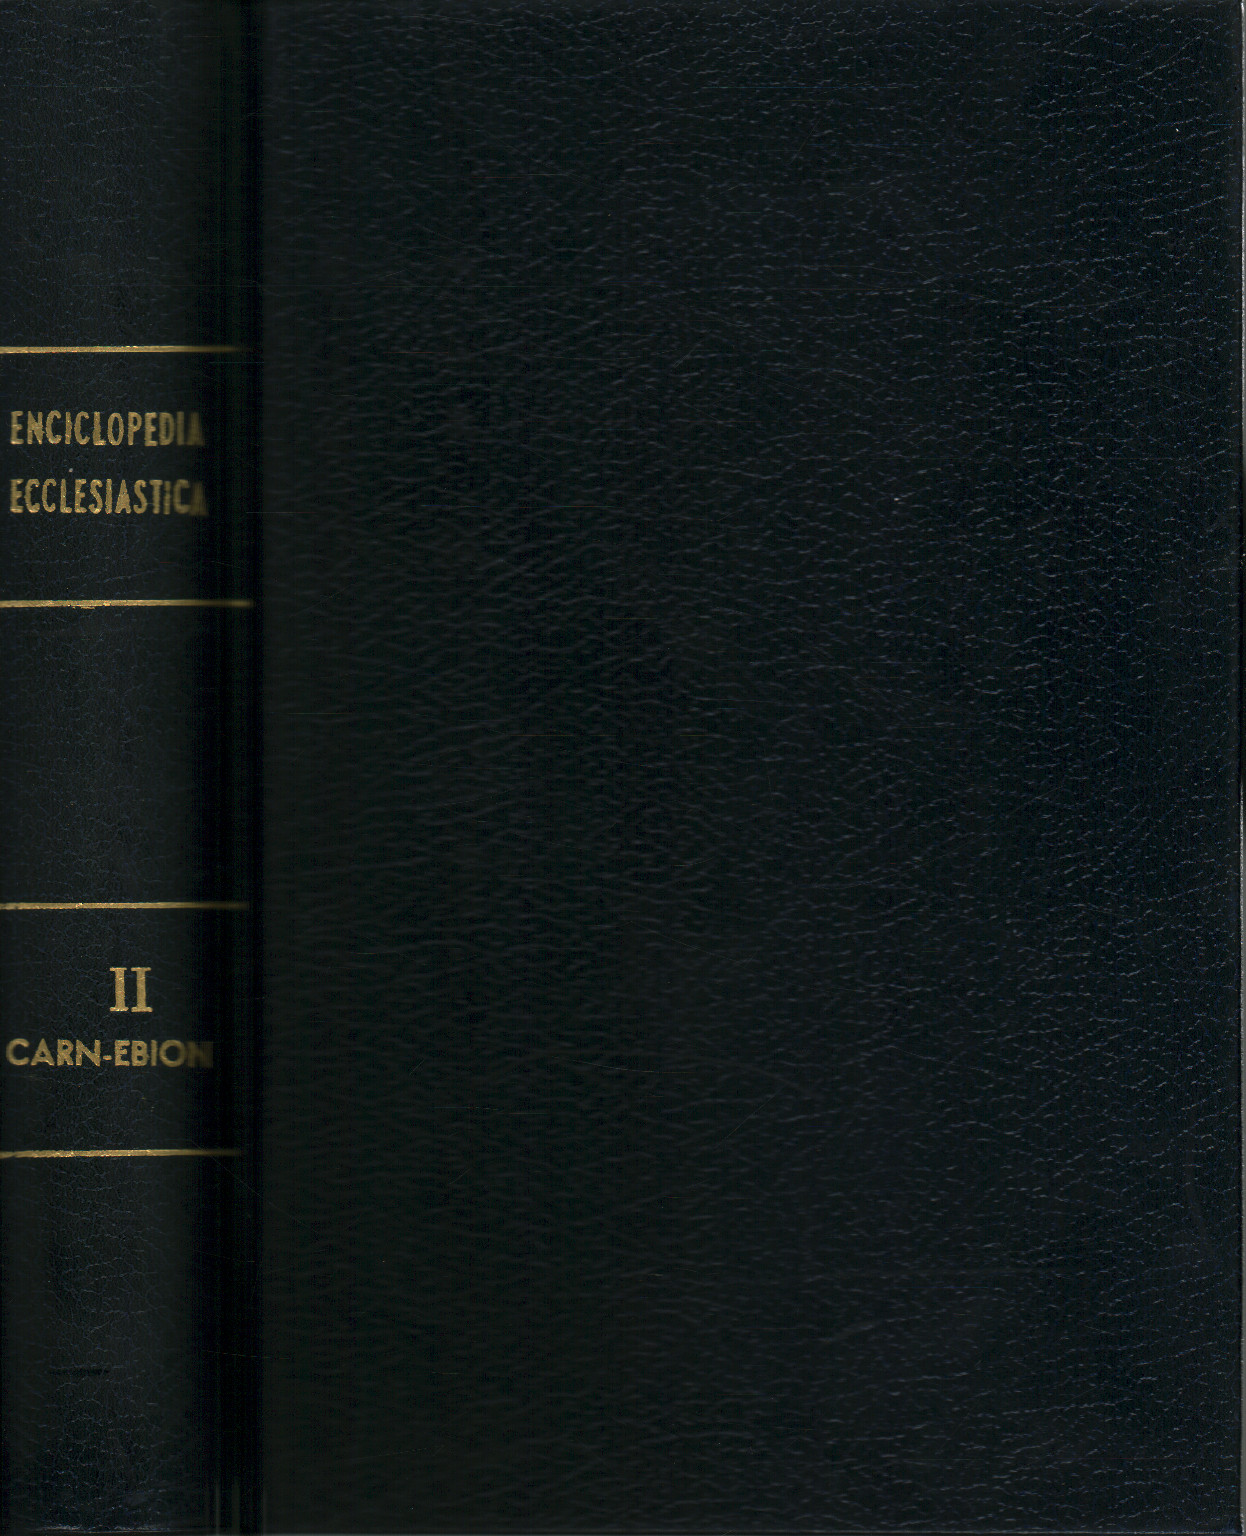 Encyclopedia ecclesiastica, Volume II, s.a.